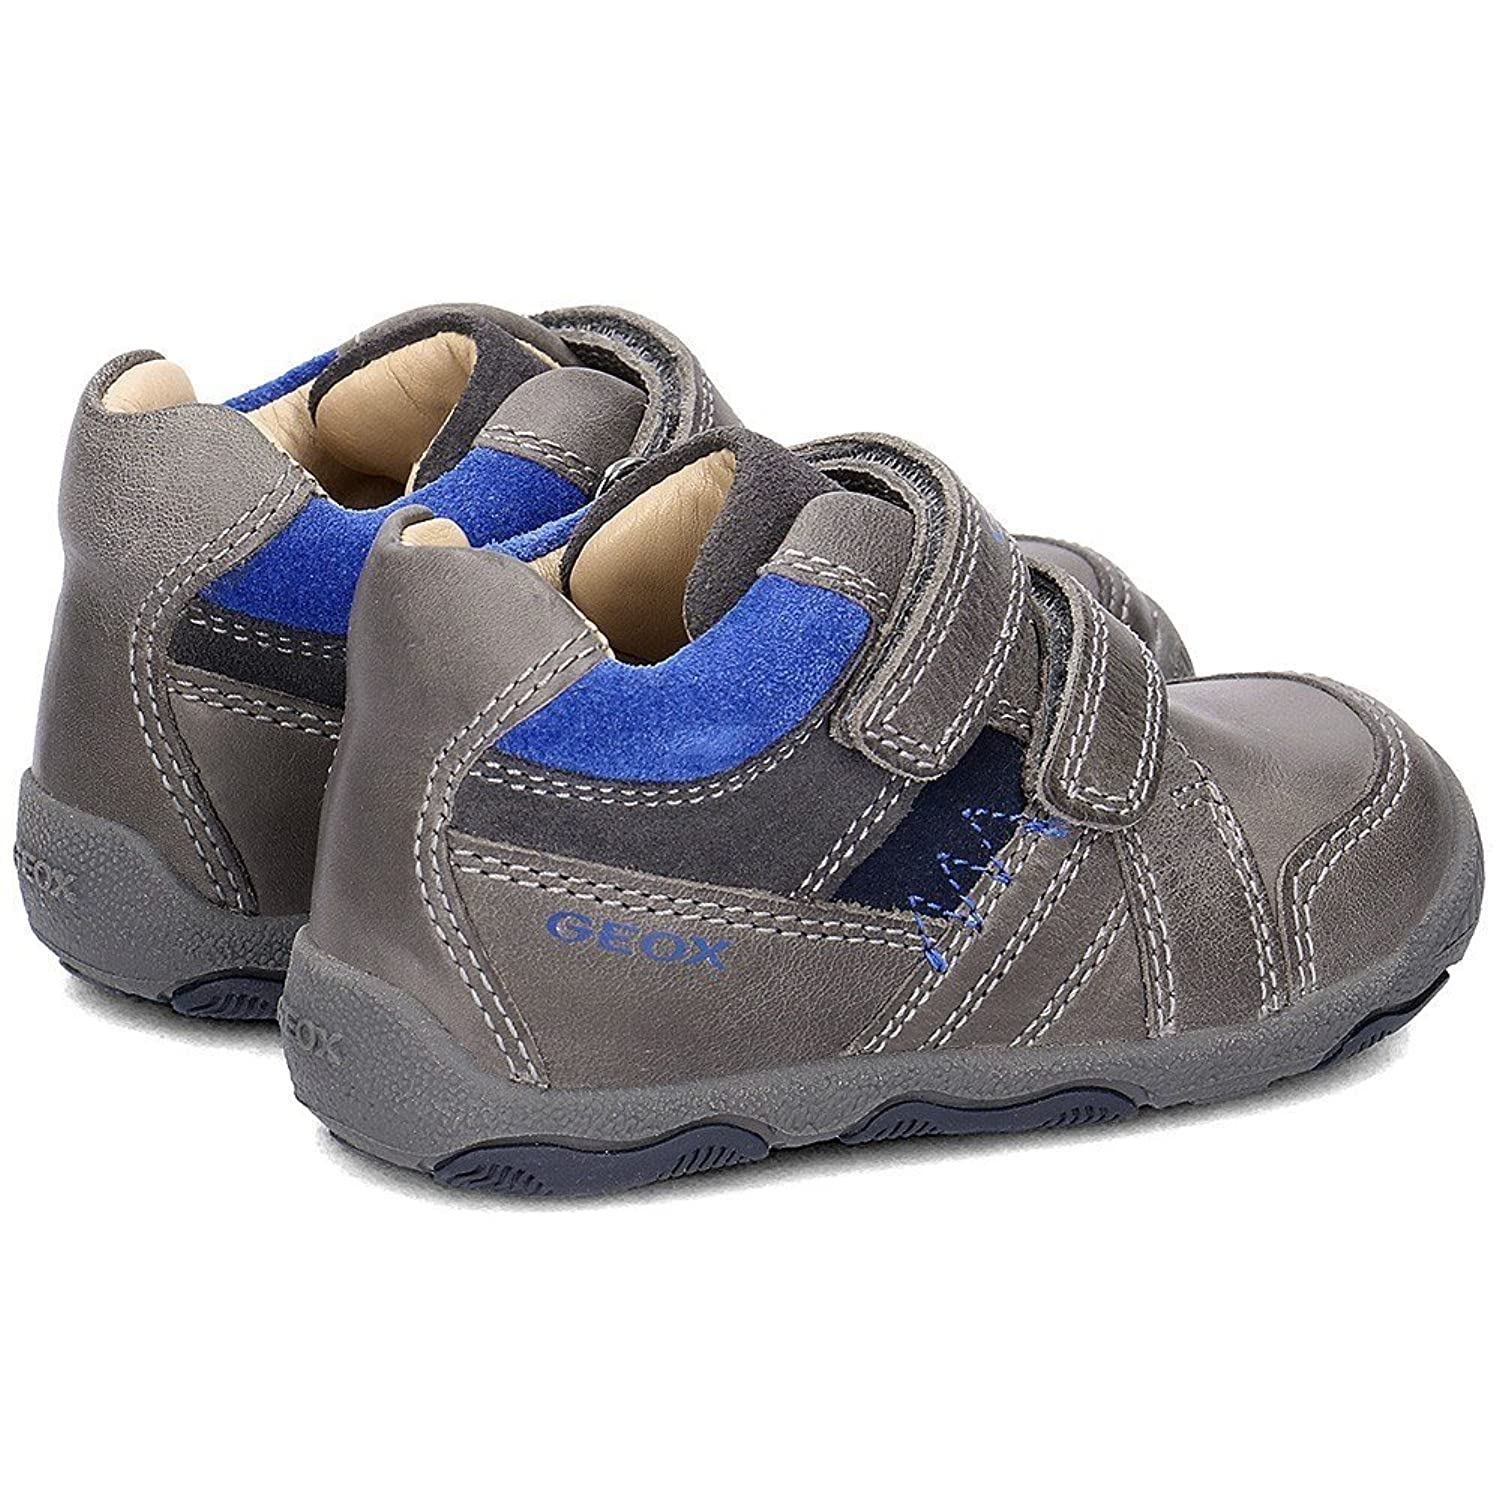 Geox Baby New Balu Boy - B640PB0CL22C0069 - Couleur: Gris - Pointure: 24.0 2ttHDE5